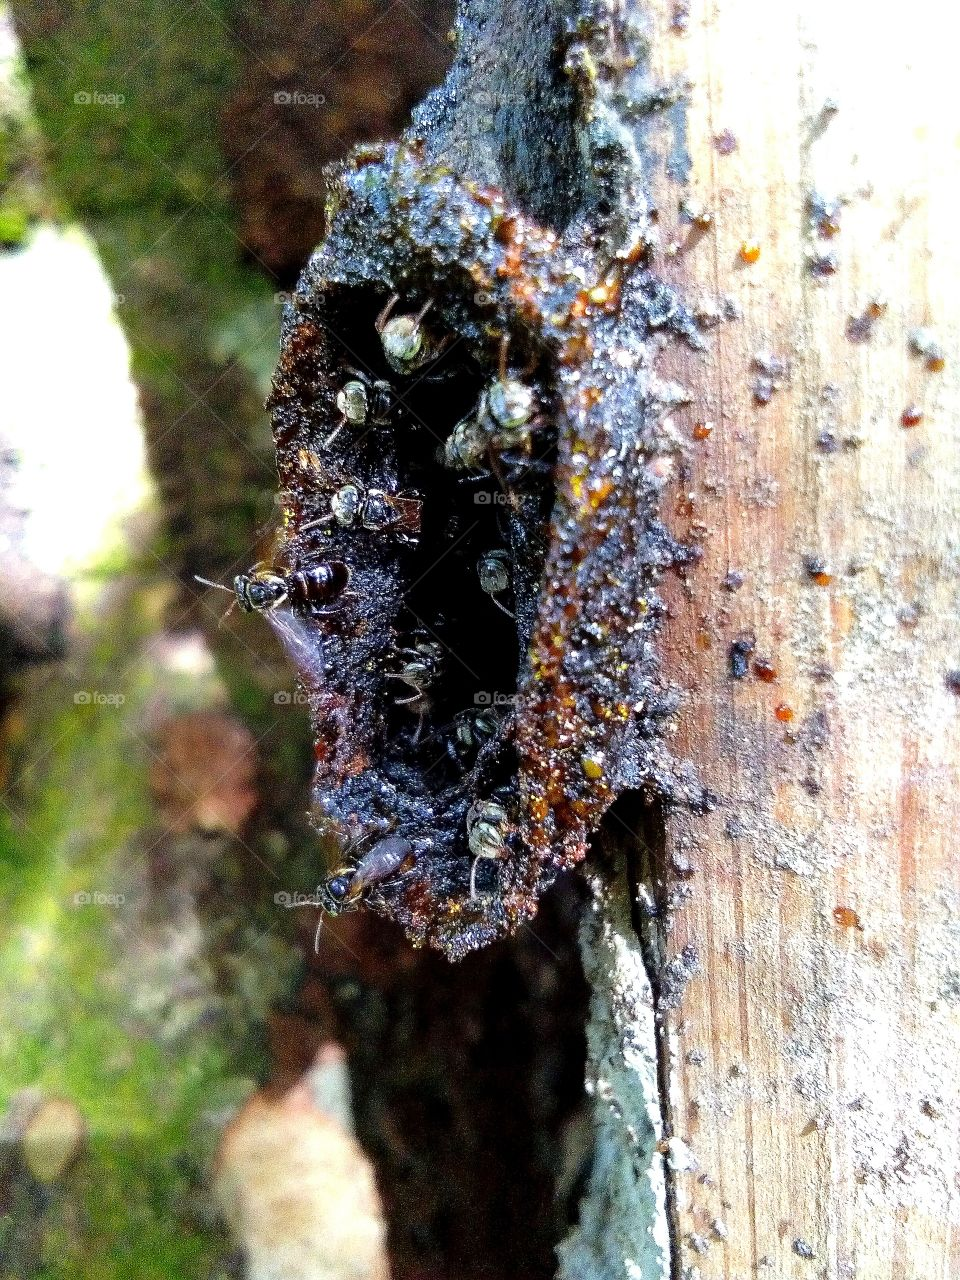 Stingless bees, sometimes called stingless honey bees or simply meliponines, are a large group of bees, comprising the tribe Meliponini.Stingless bees have been shown to be valuable pollinators of crops such as macadamias and mangos